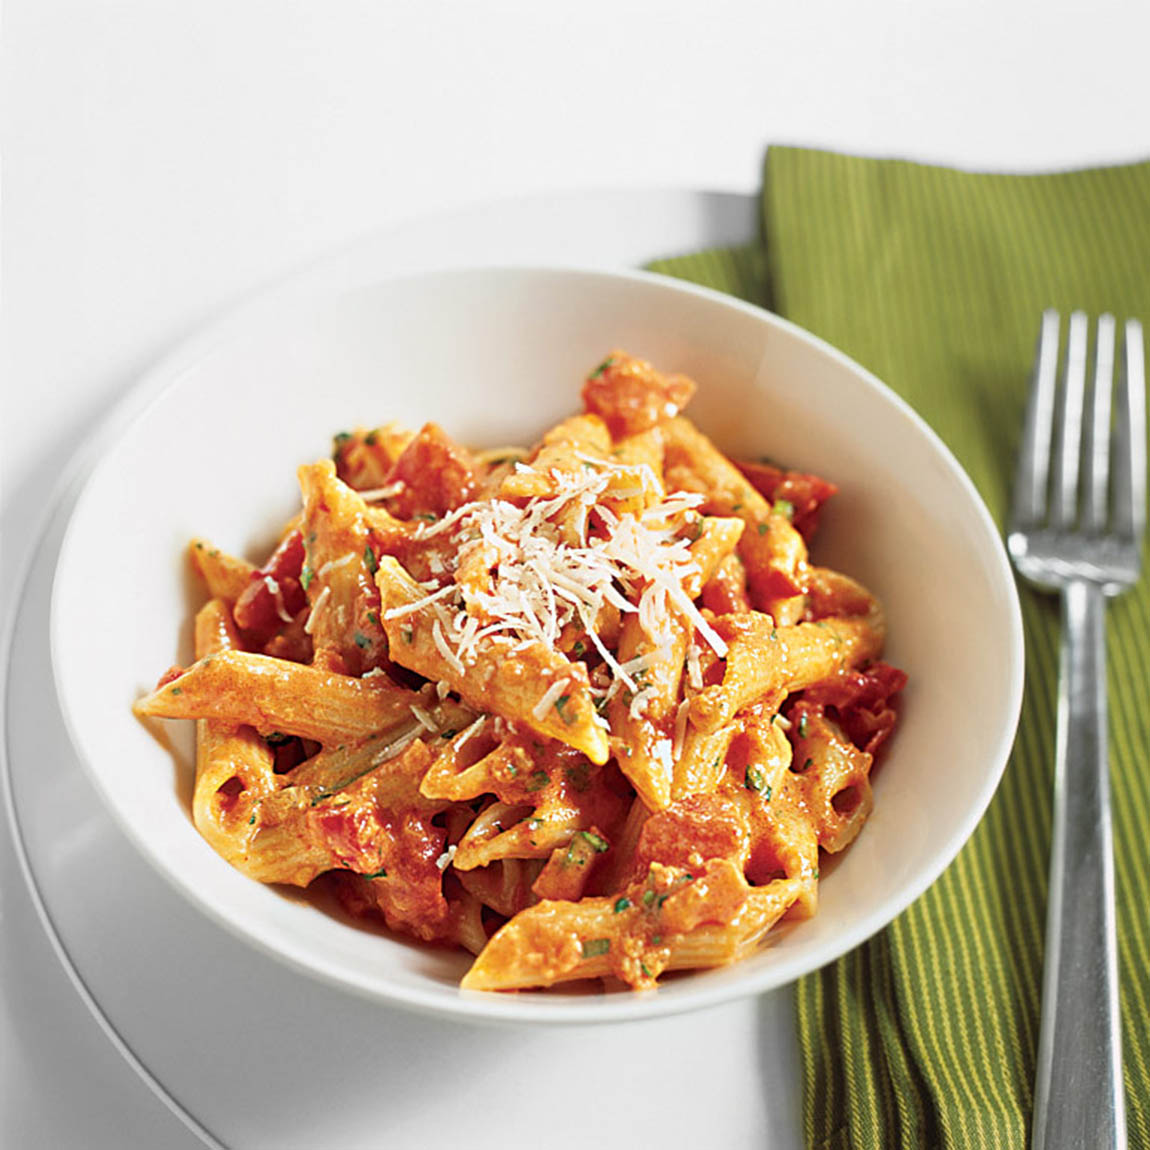 Penne alla Vodka Recipe - America's Test Kitchen